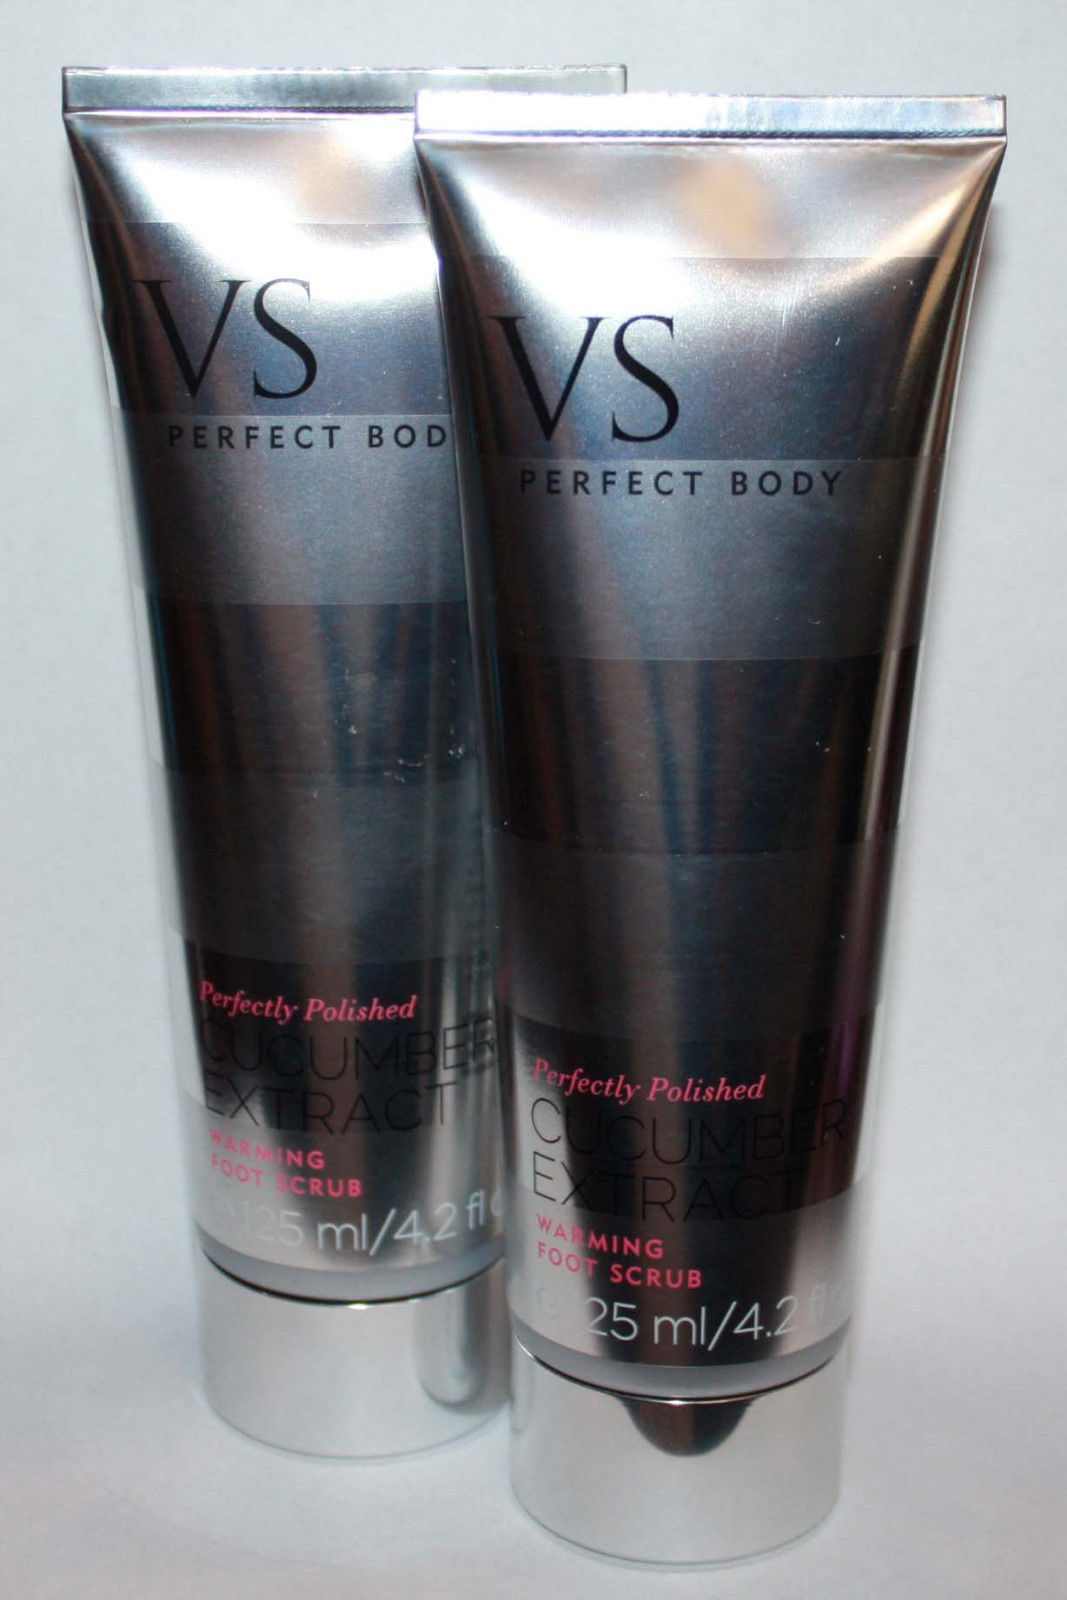 2 Victoria's Secret Perfectly Polished Cucumber Extract Foot Scrub 4.2 oz 11287